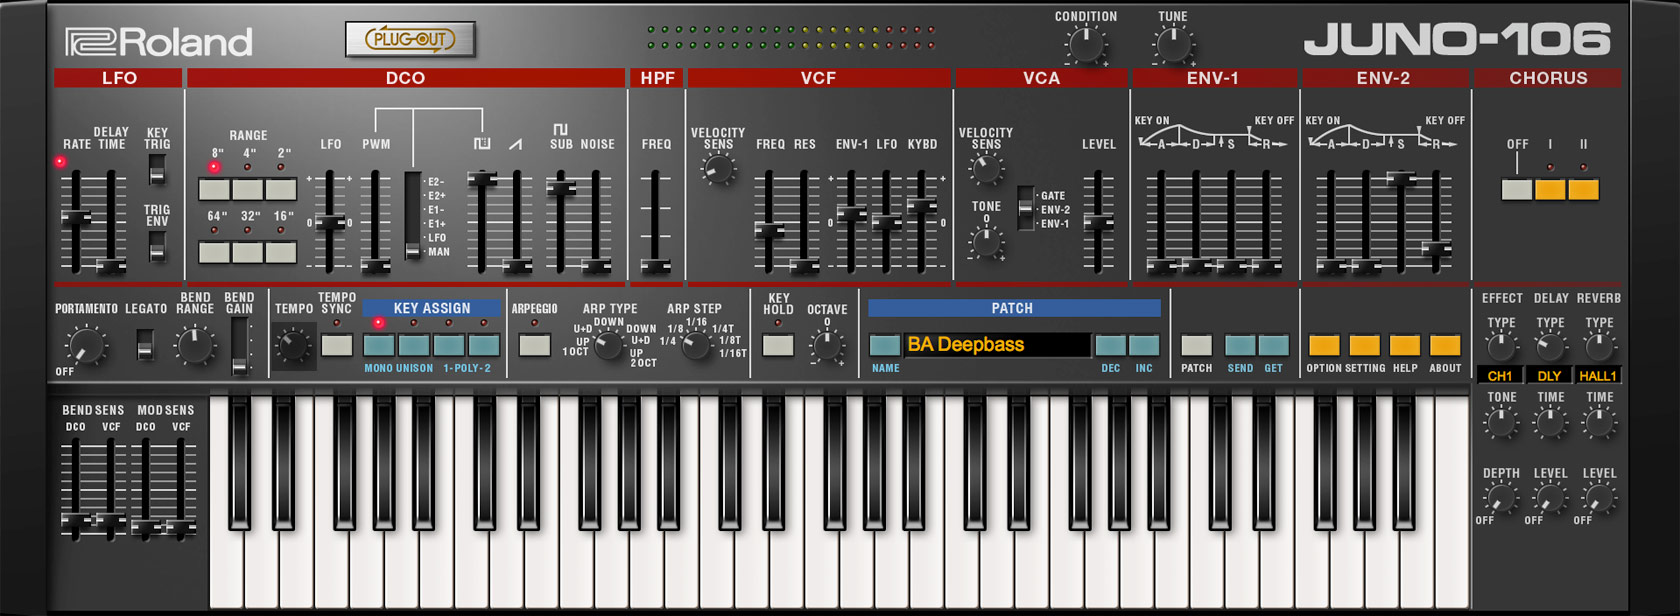 Roland Juno-106 Synthesizer Software